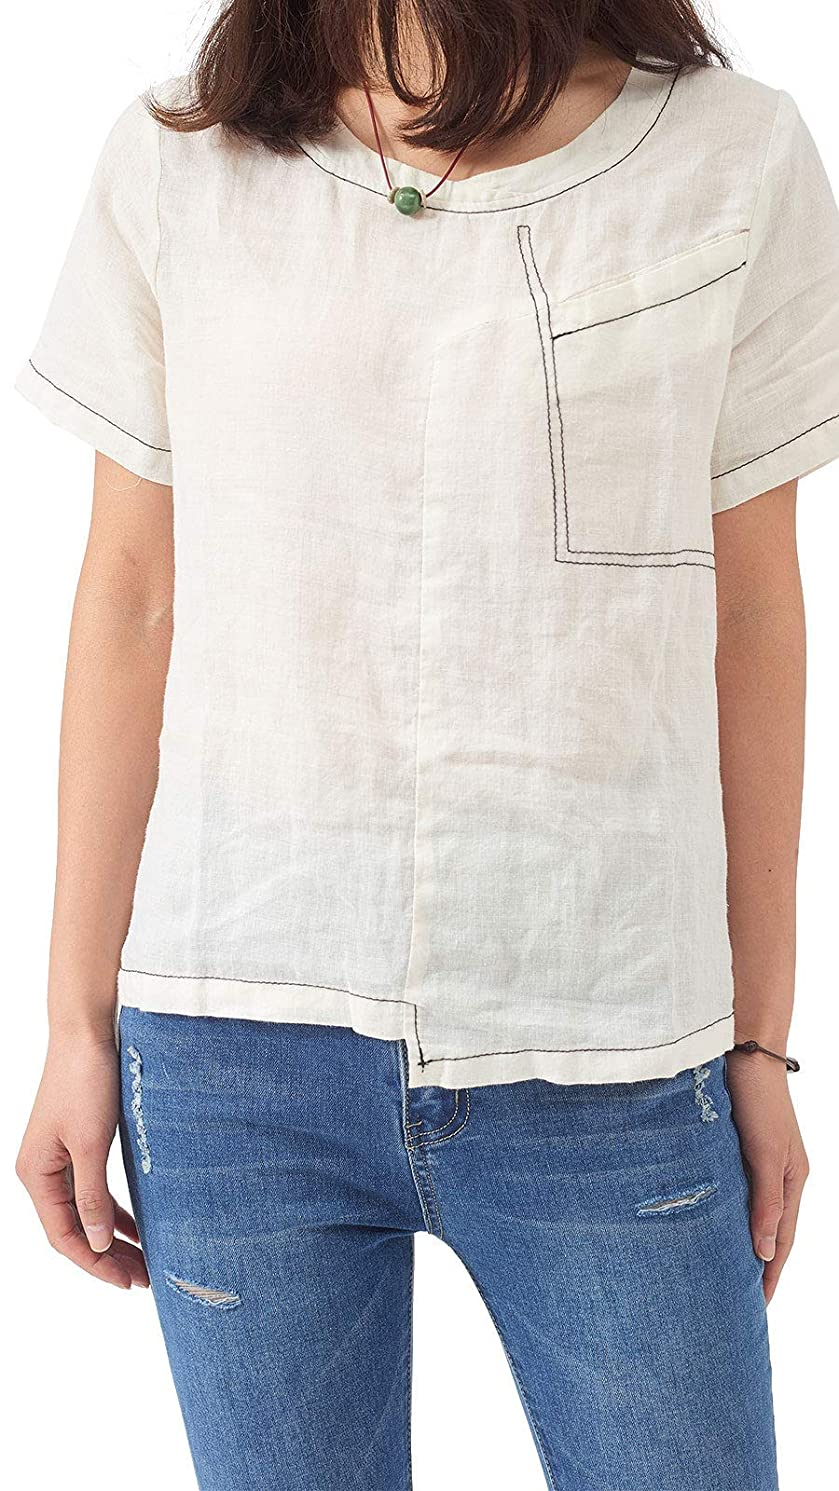 Les umes Women's Plus 100% Linen T-Shirt Crop Tops Casual Loose Short Sleeves Basic Tee